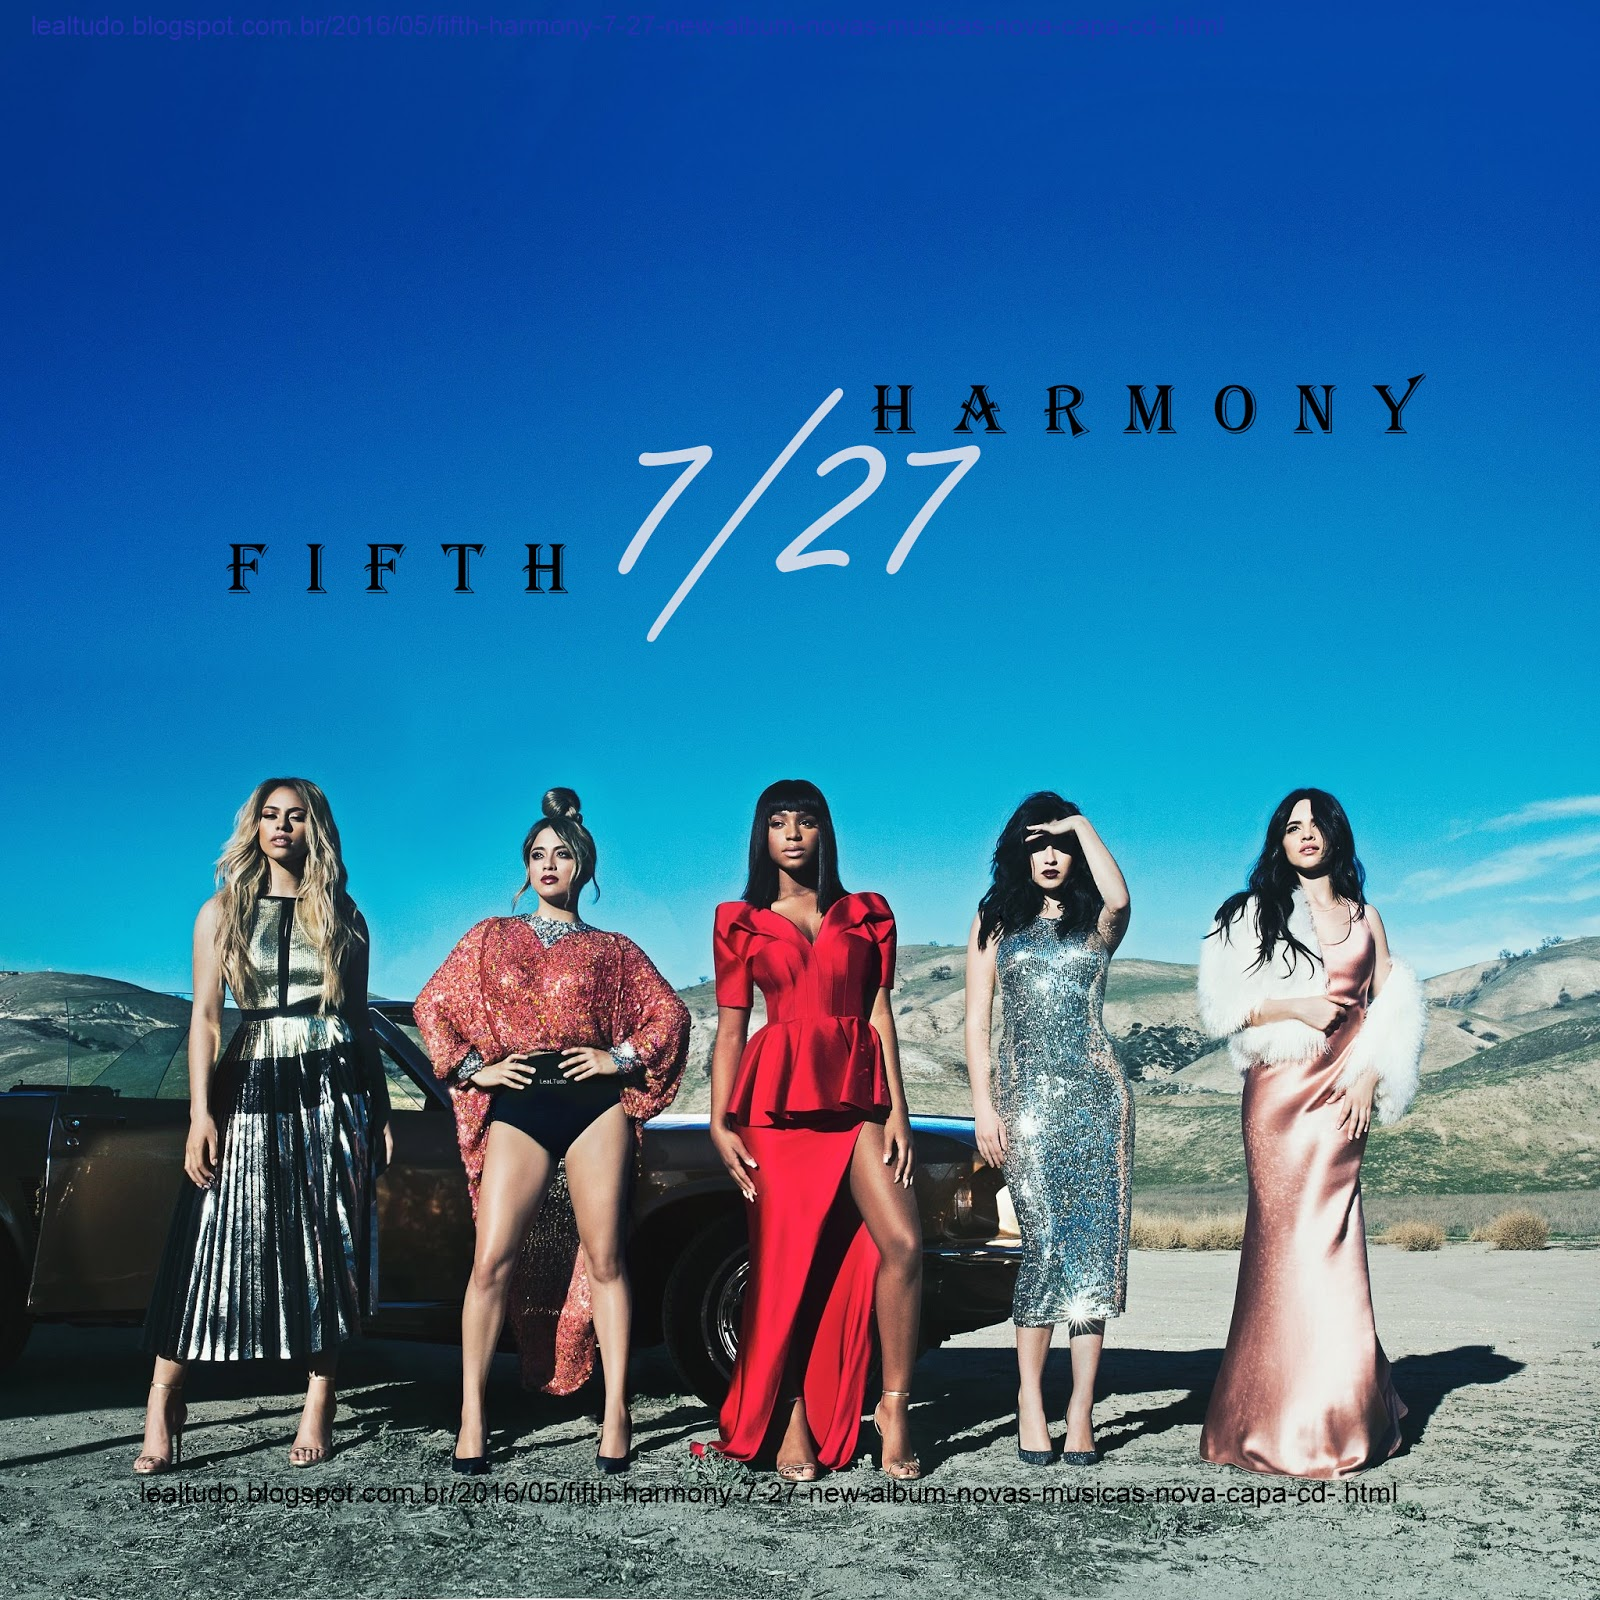 FIFTH HARMONY 7/27 New Album Novas Musicas Nova Capa do CD Novo Cover Foto Songs Listen Online - Long Dress Girls Garotas de Vestidos